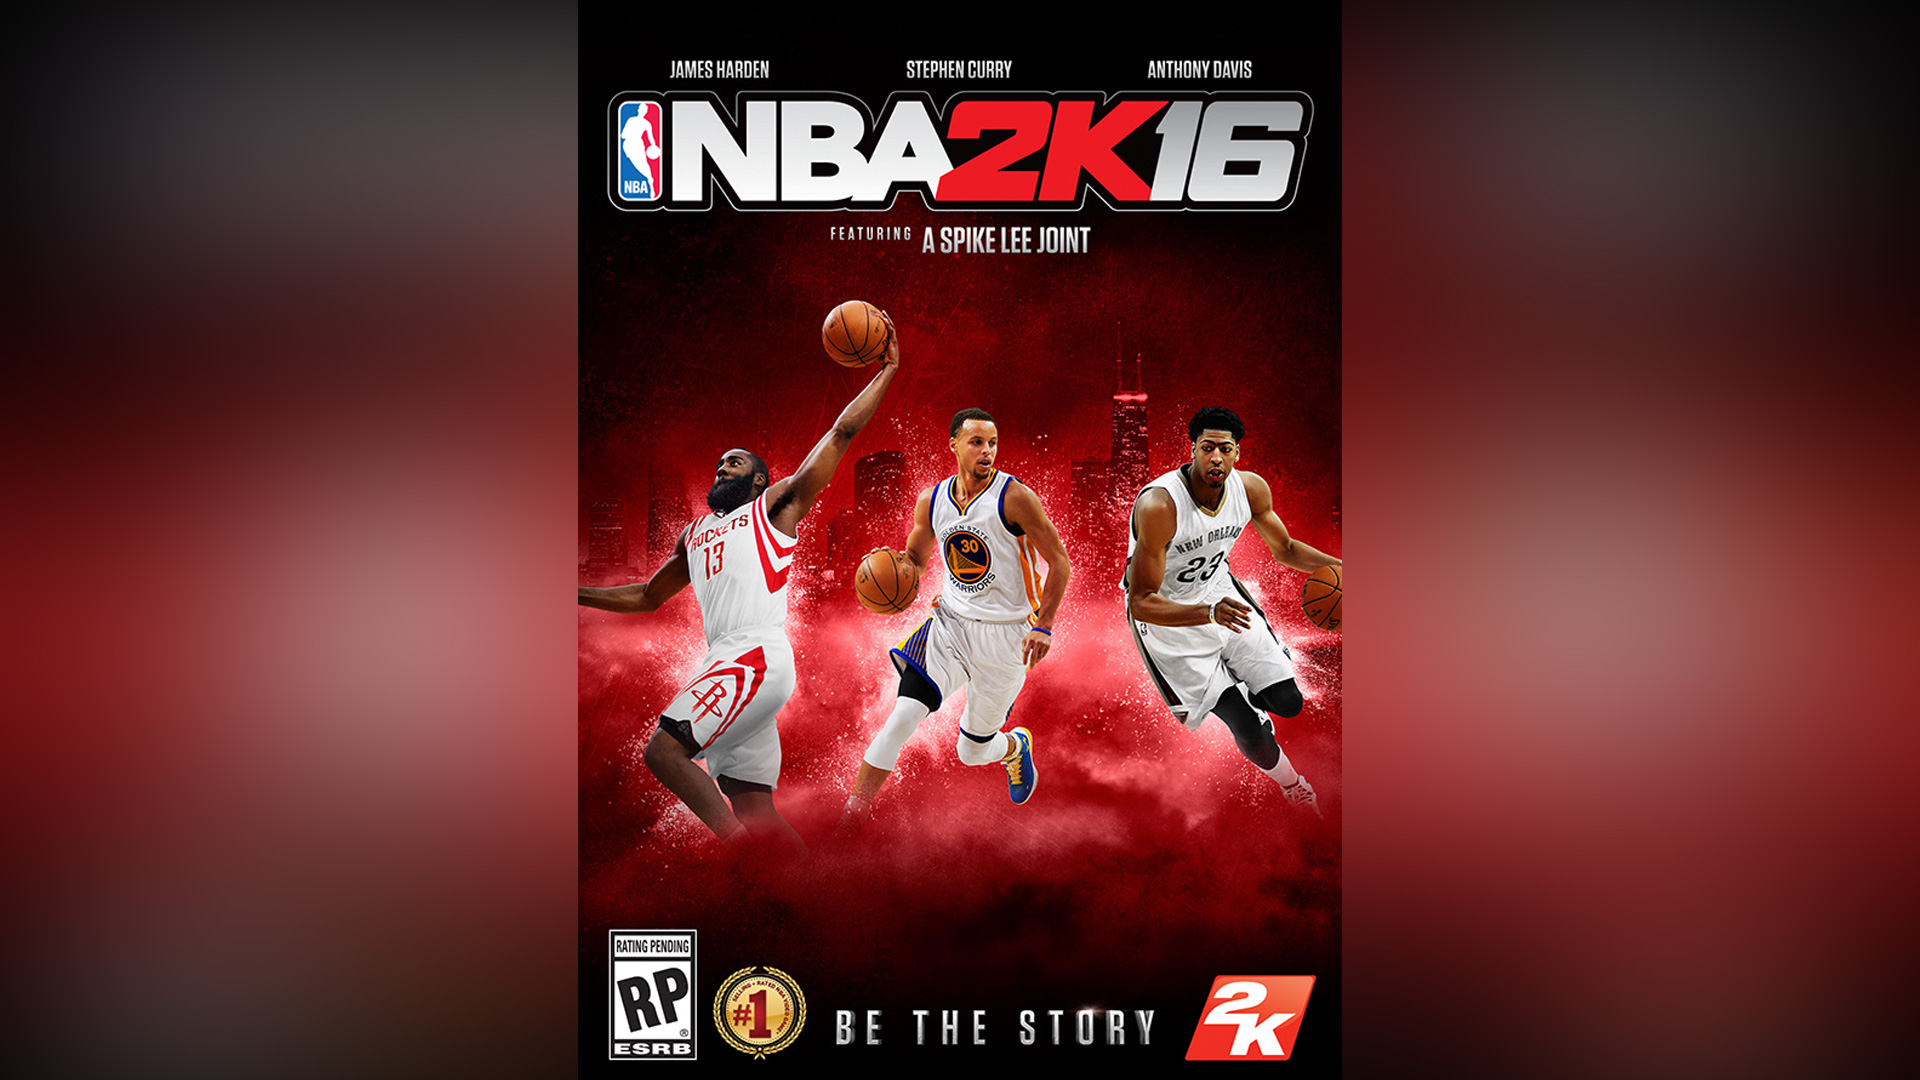 NBA 2K16 covers to feature Stephen Curry, James Harden